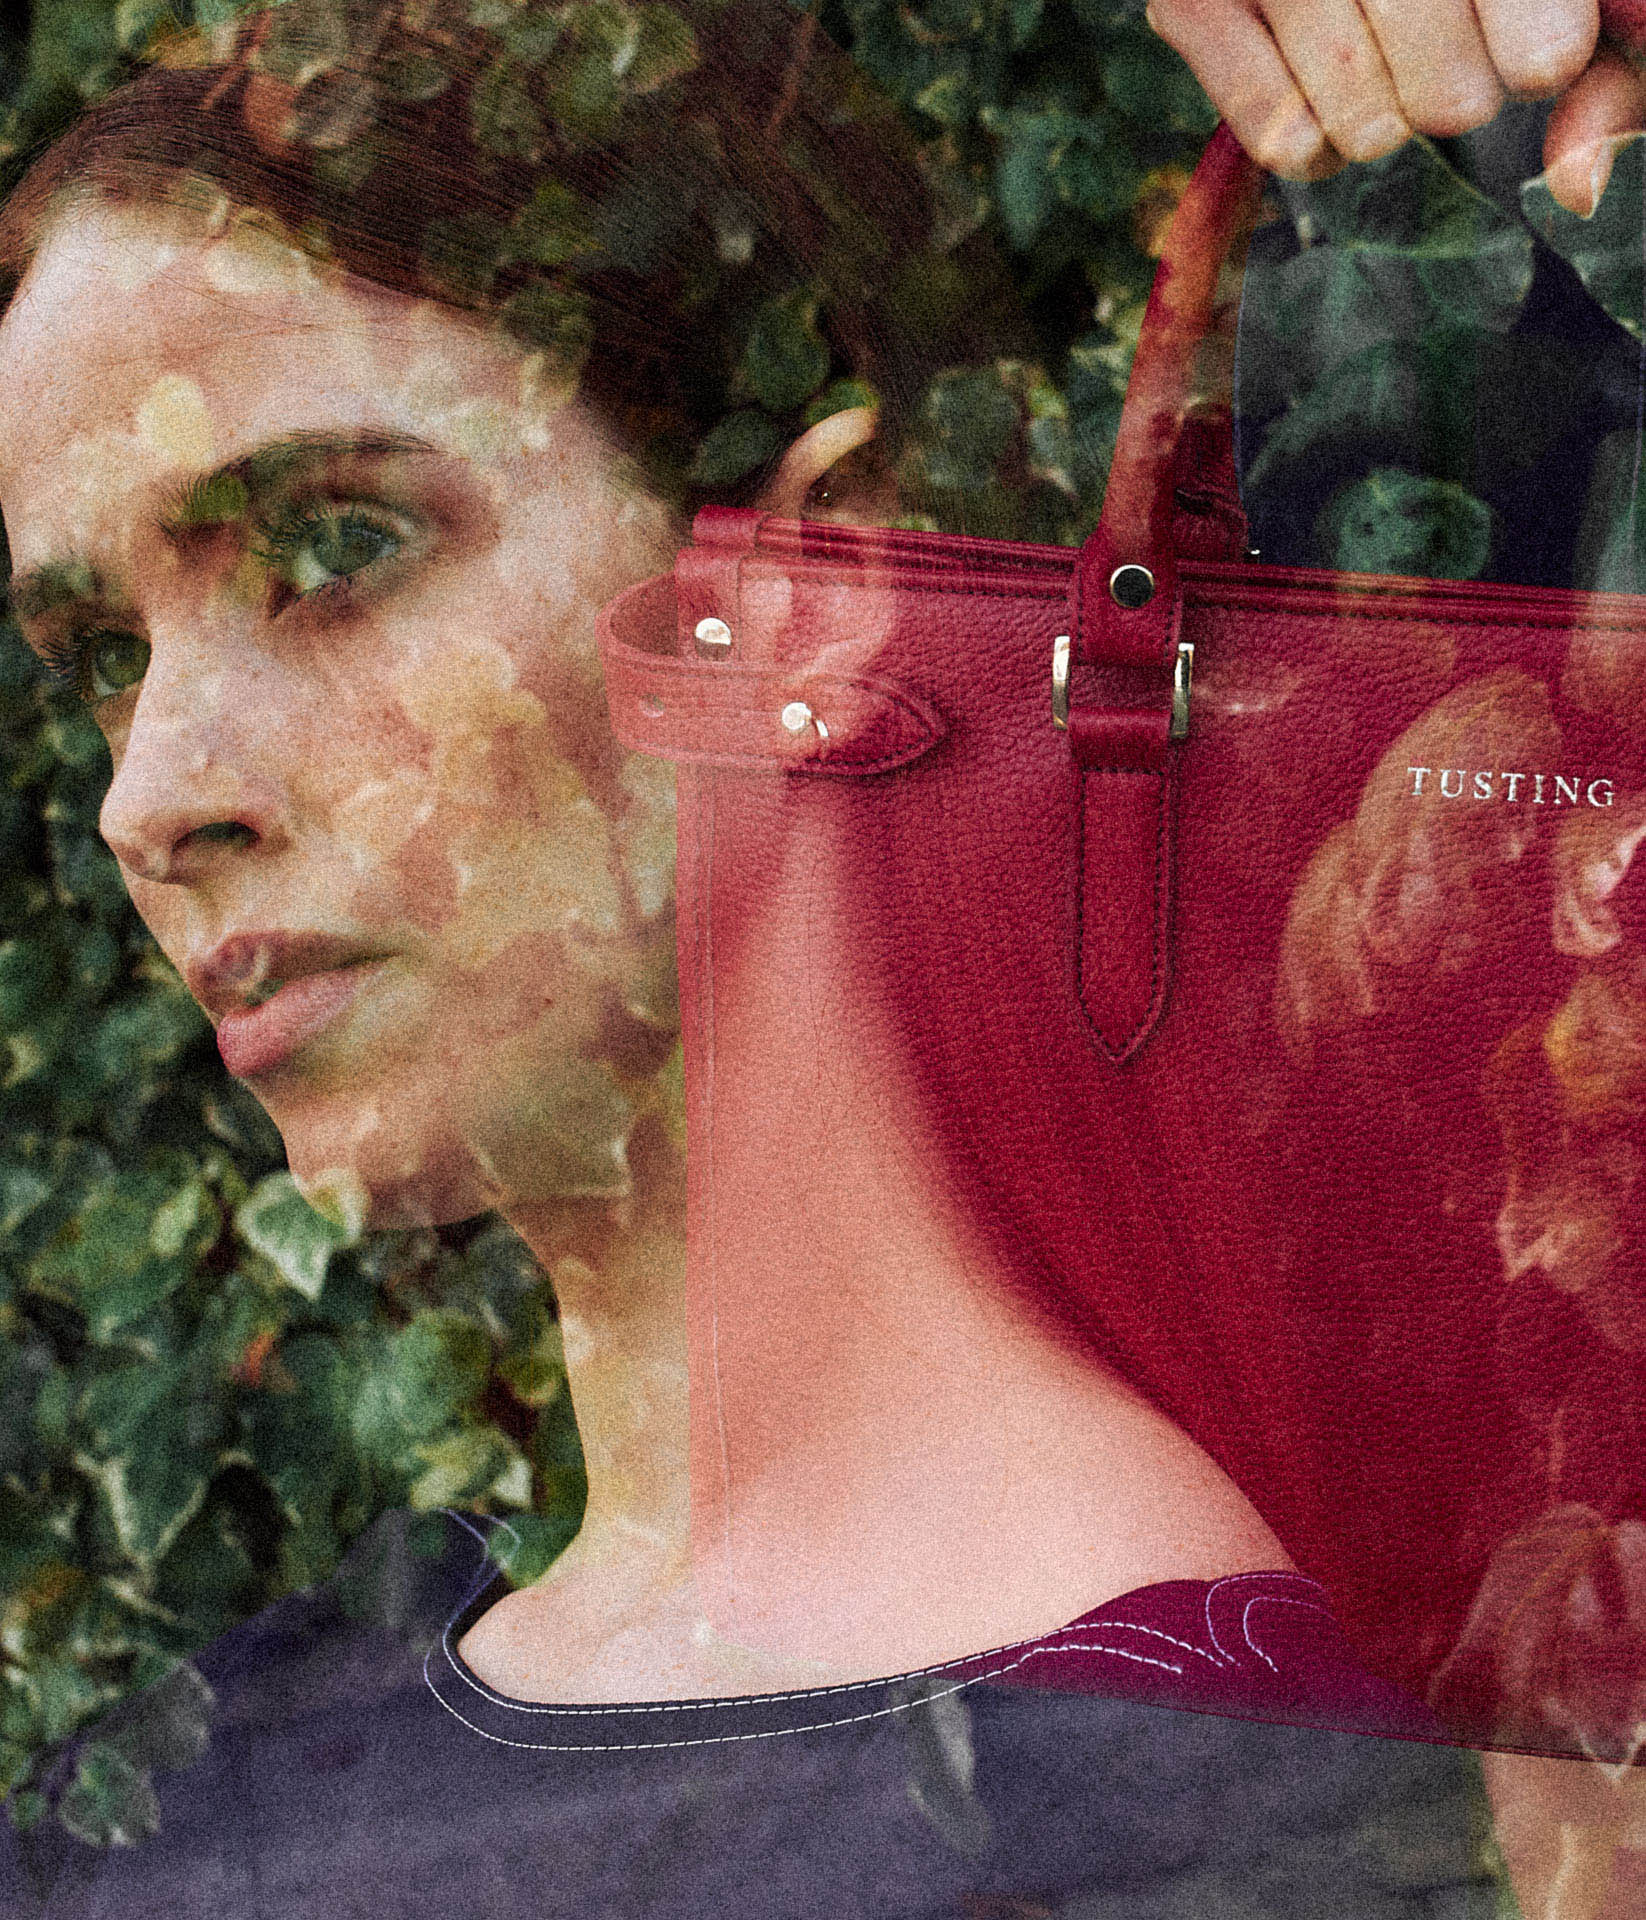 Double exposure, girl with red hair and red leather handbag